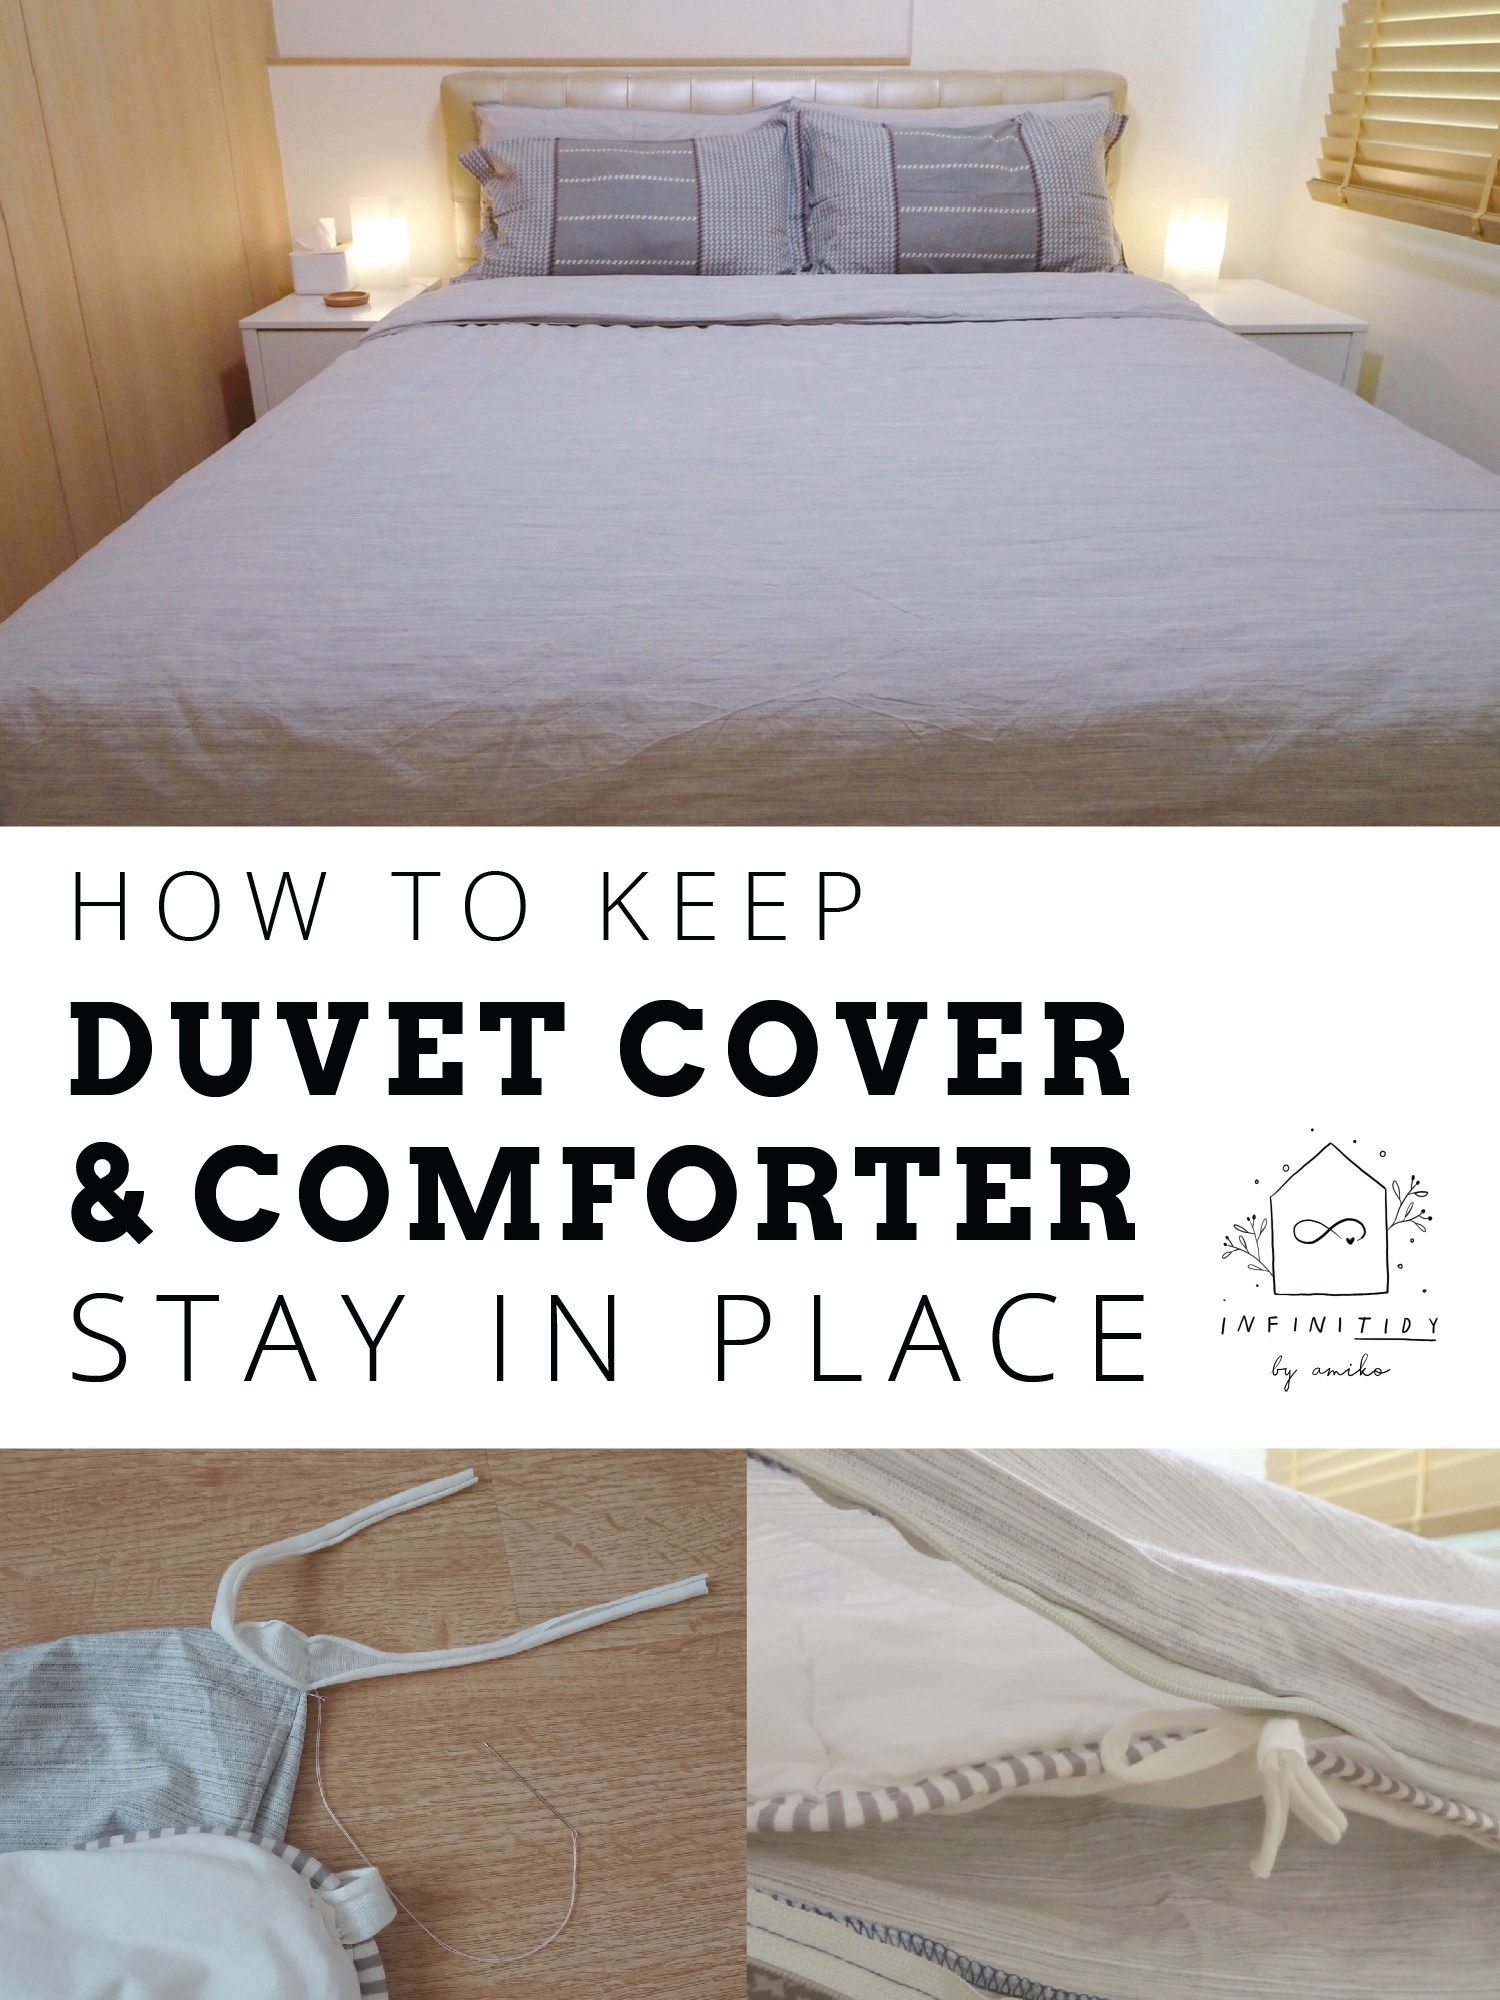 How To Keep Duvet Cover Comforter Stay In Place With Images